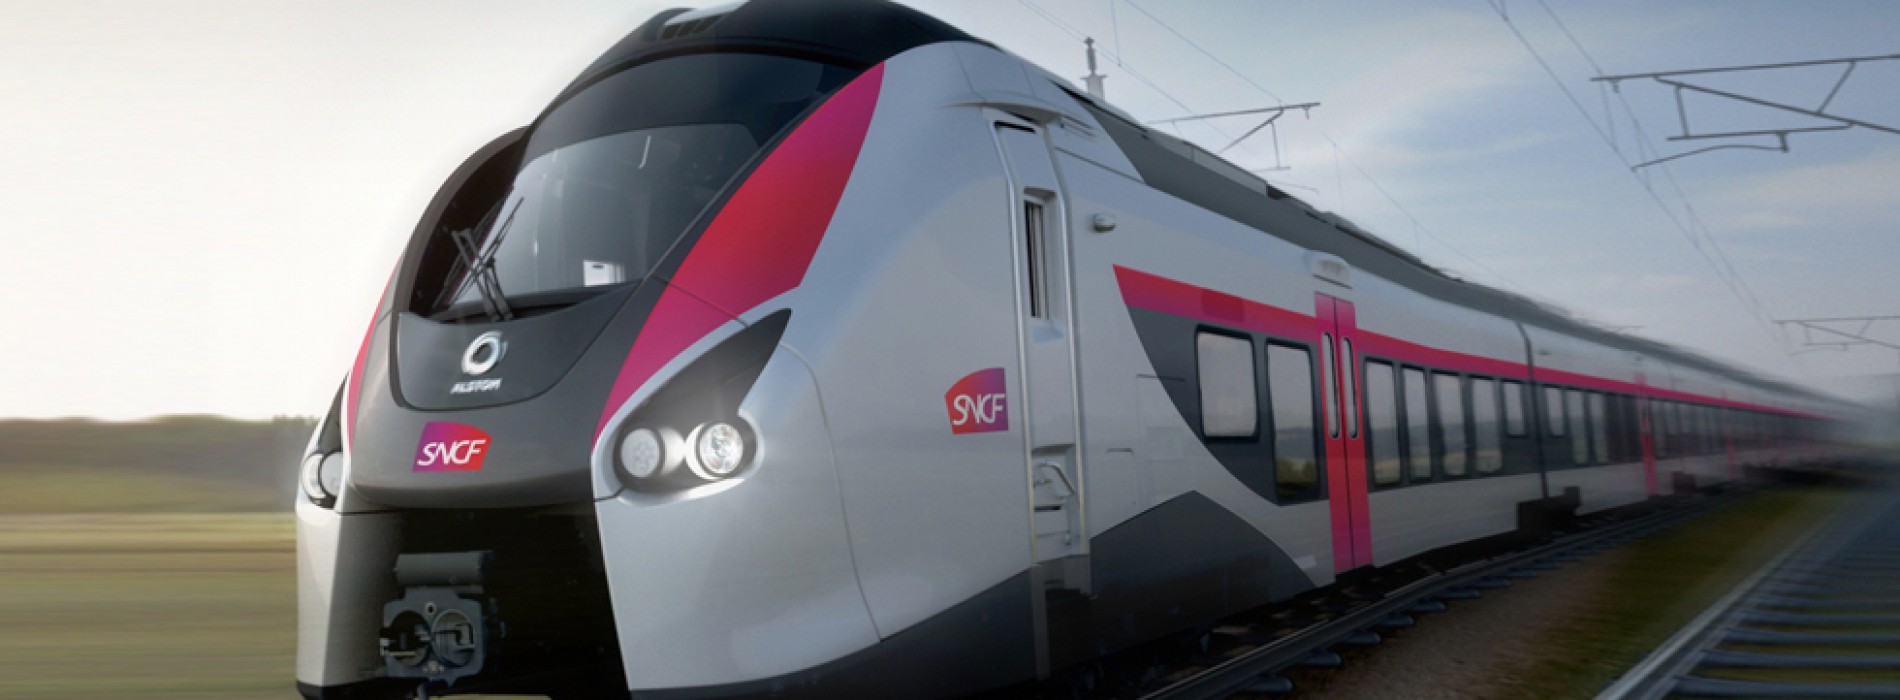 In Make in India push, France's Alstom to make 800 'super high-power' locomotives locally